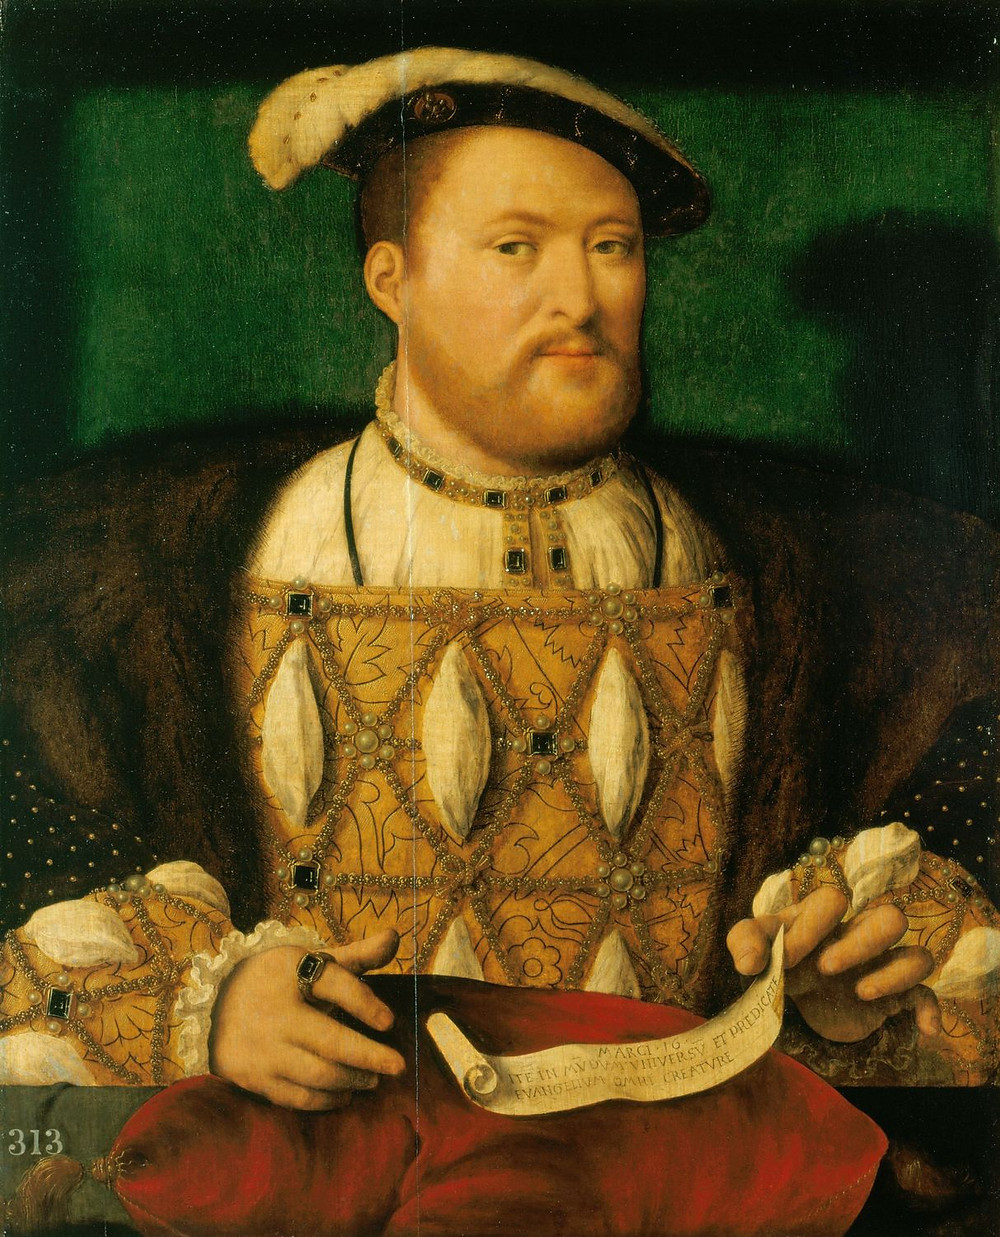 king Henry VIII of England (reigned 1509–1547) (portrait after Hans Holbein the Younger, Royal Collection, Windsor Castle)